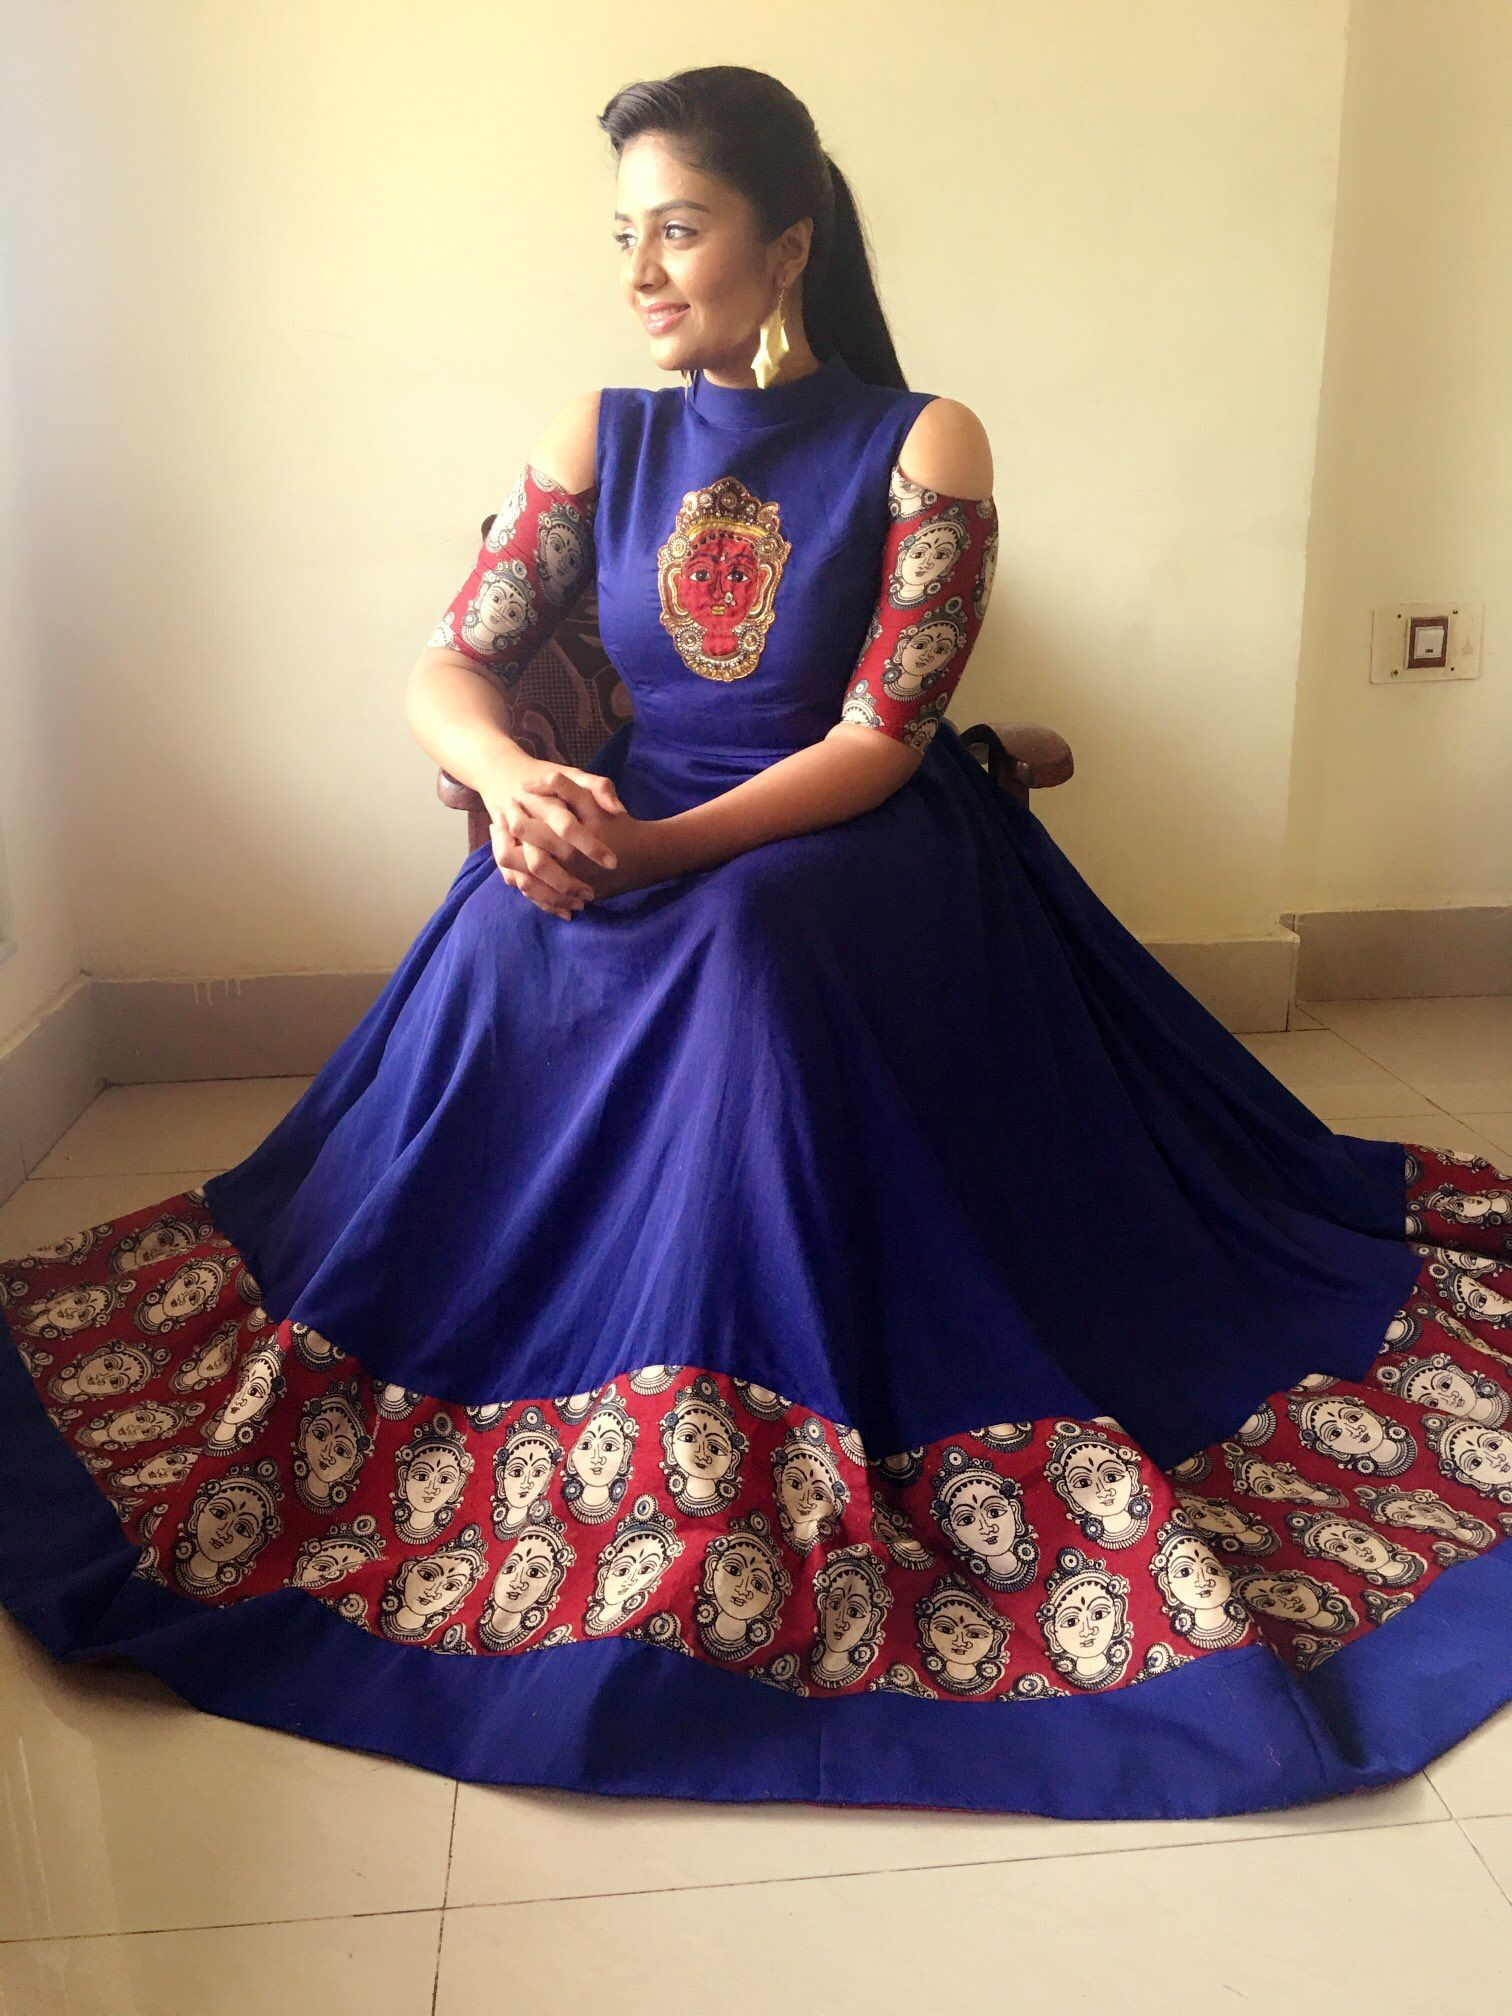 Pin By Rohini On Indian Attire Kalamkari Dresses Dress Patterns Clothes For Women